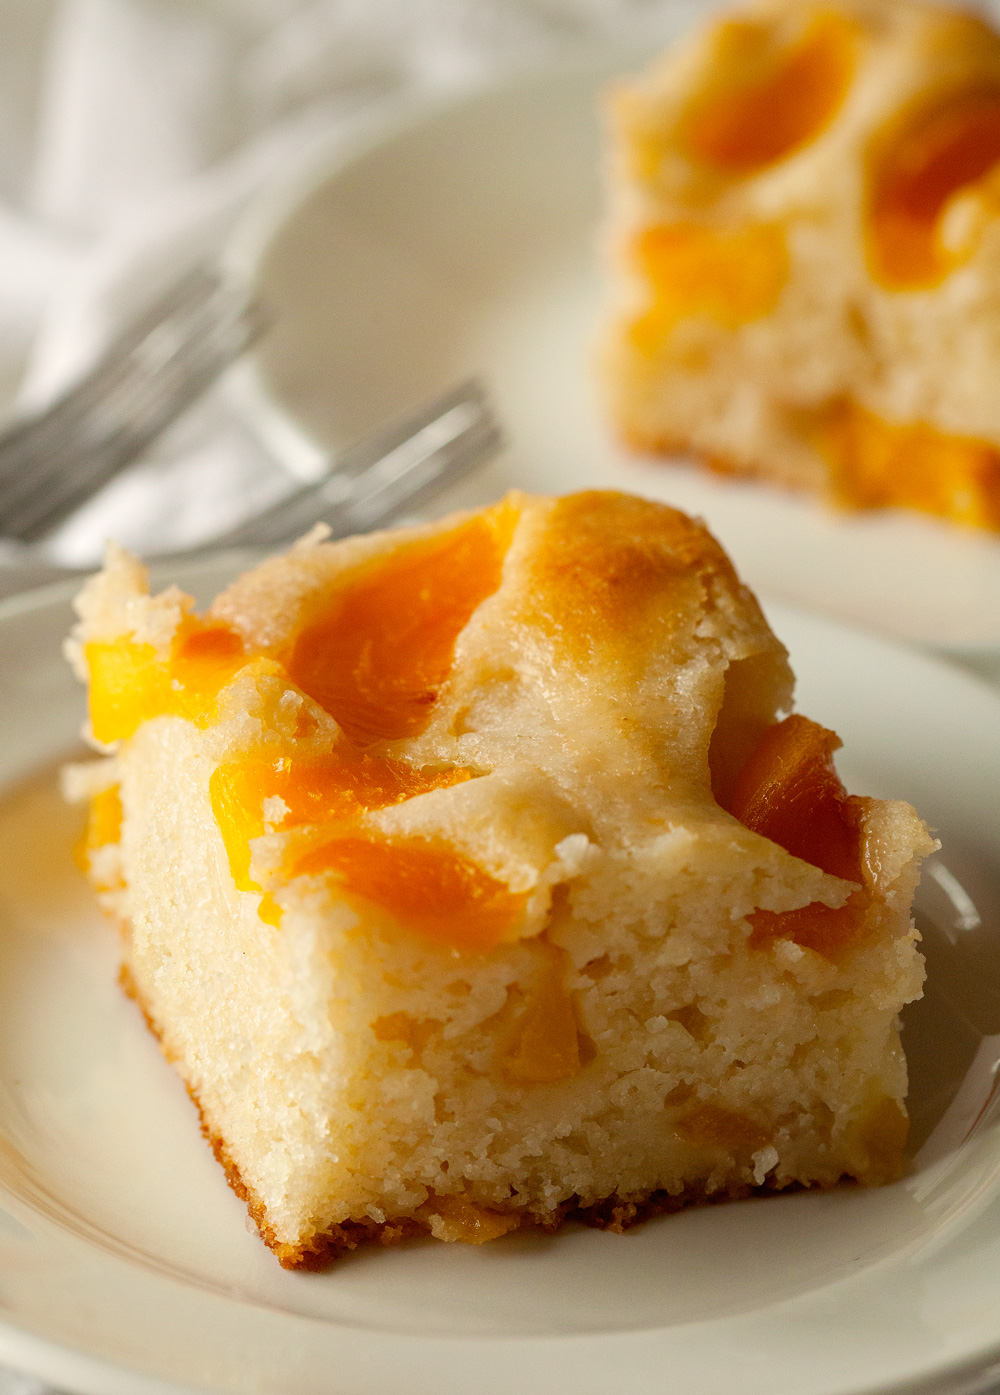 Cake Mix Can Peaches Peach Cobbler Recipe